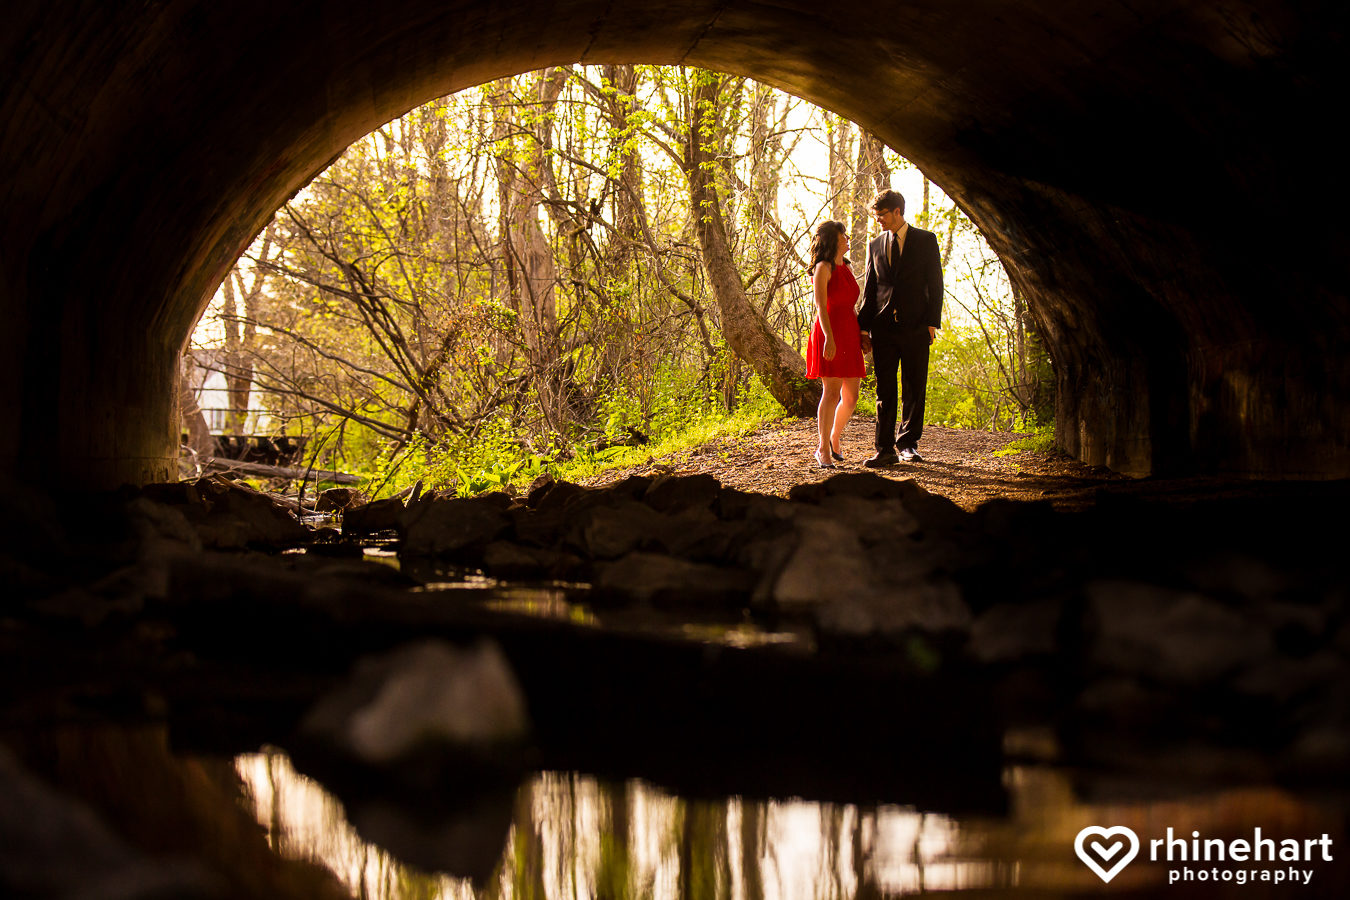 central-pa-wedding-photographers-best-top-artistic-creative-colorful-fun-personal-6